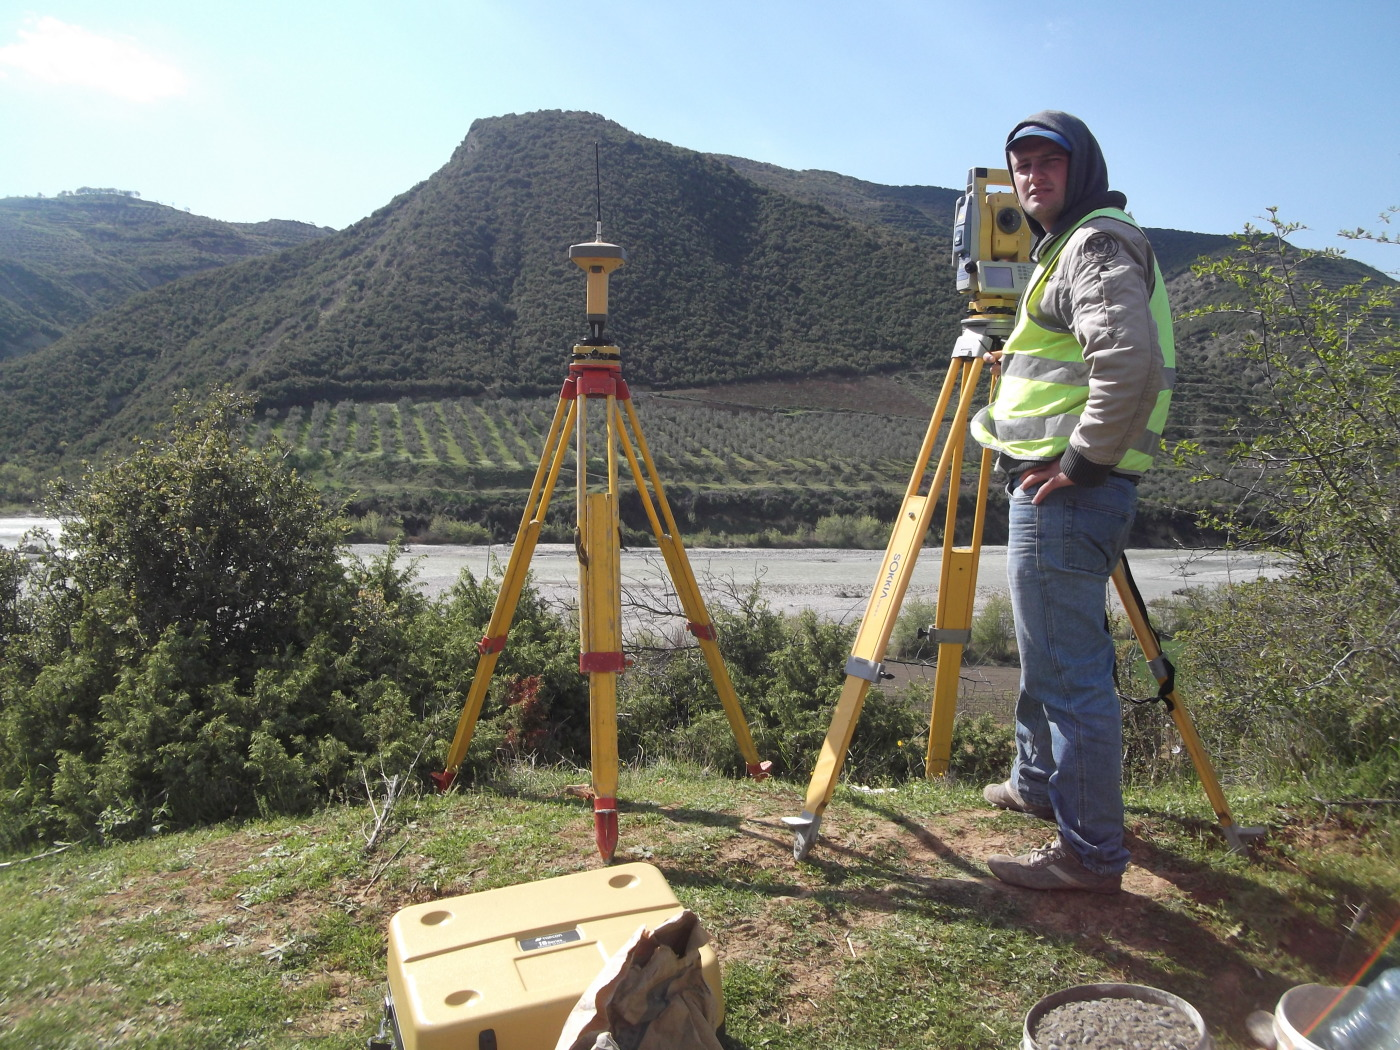 Trans Atlantic Pipeline Surveying